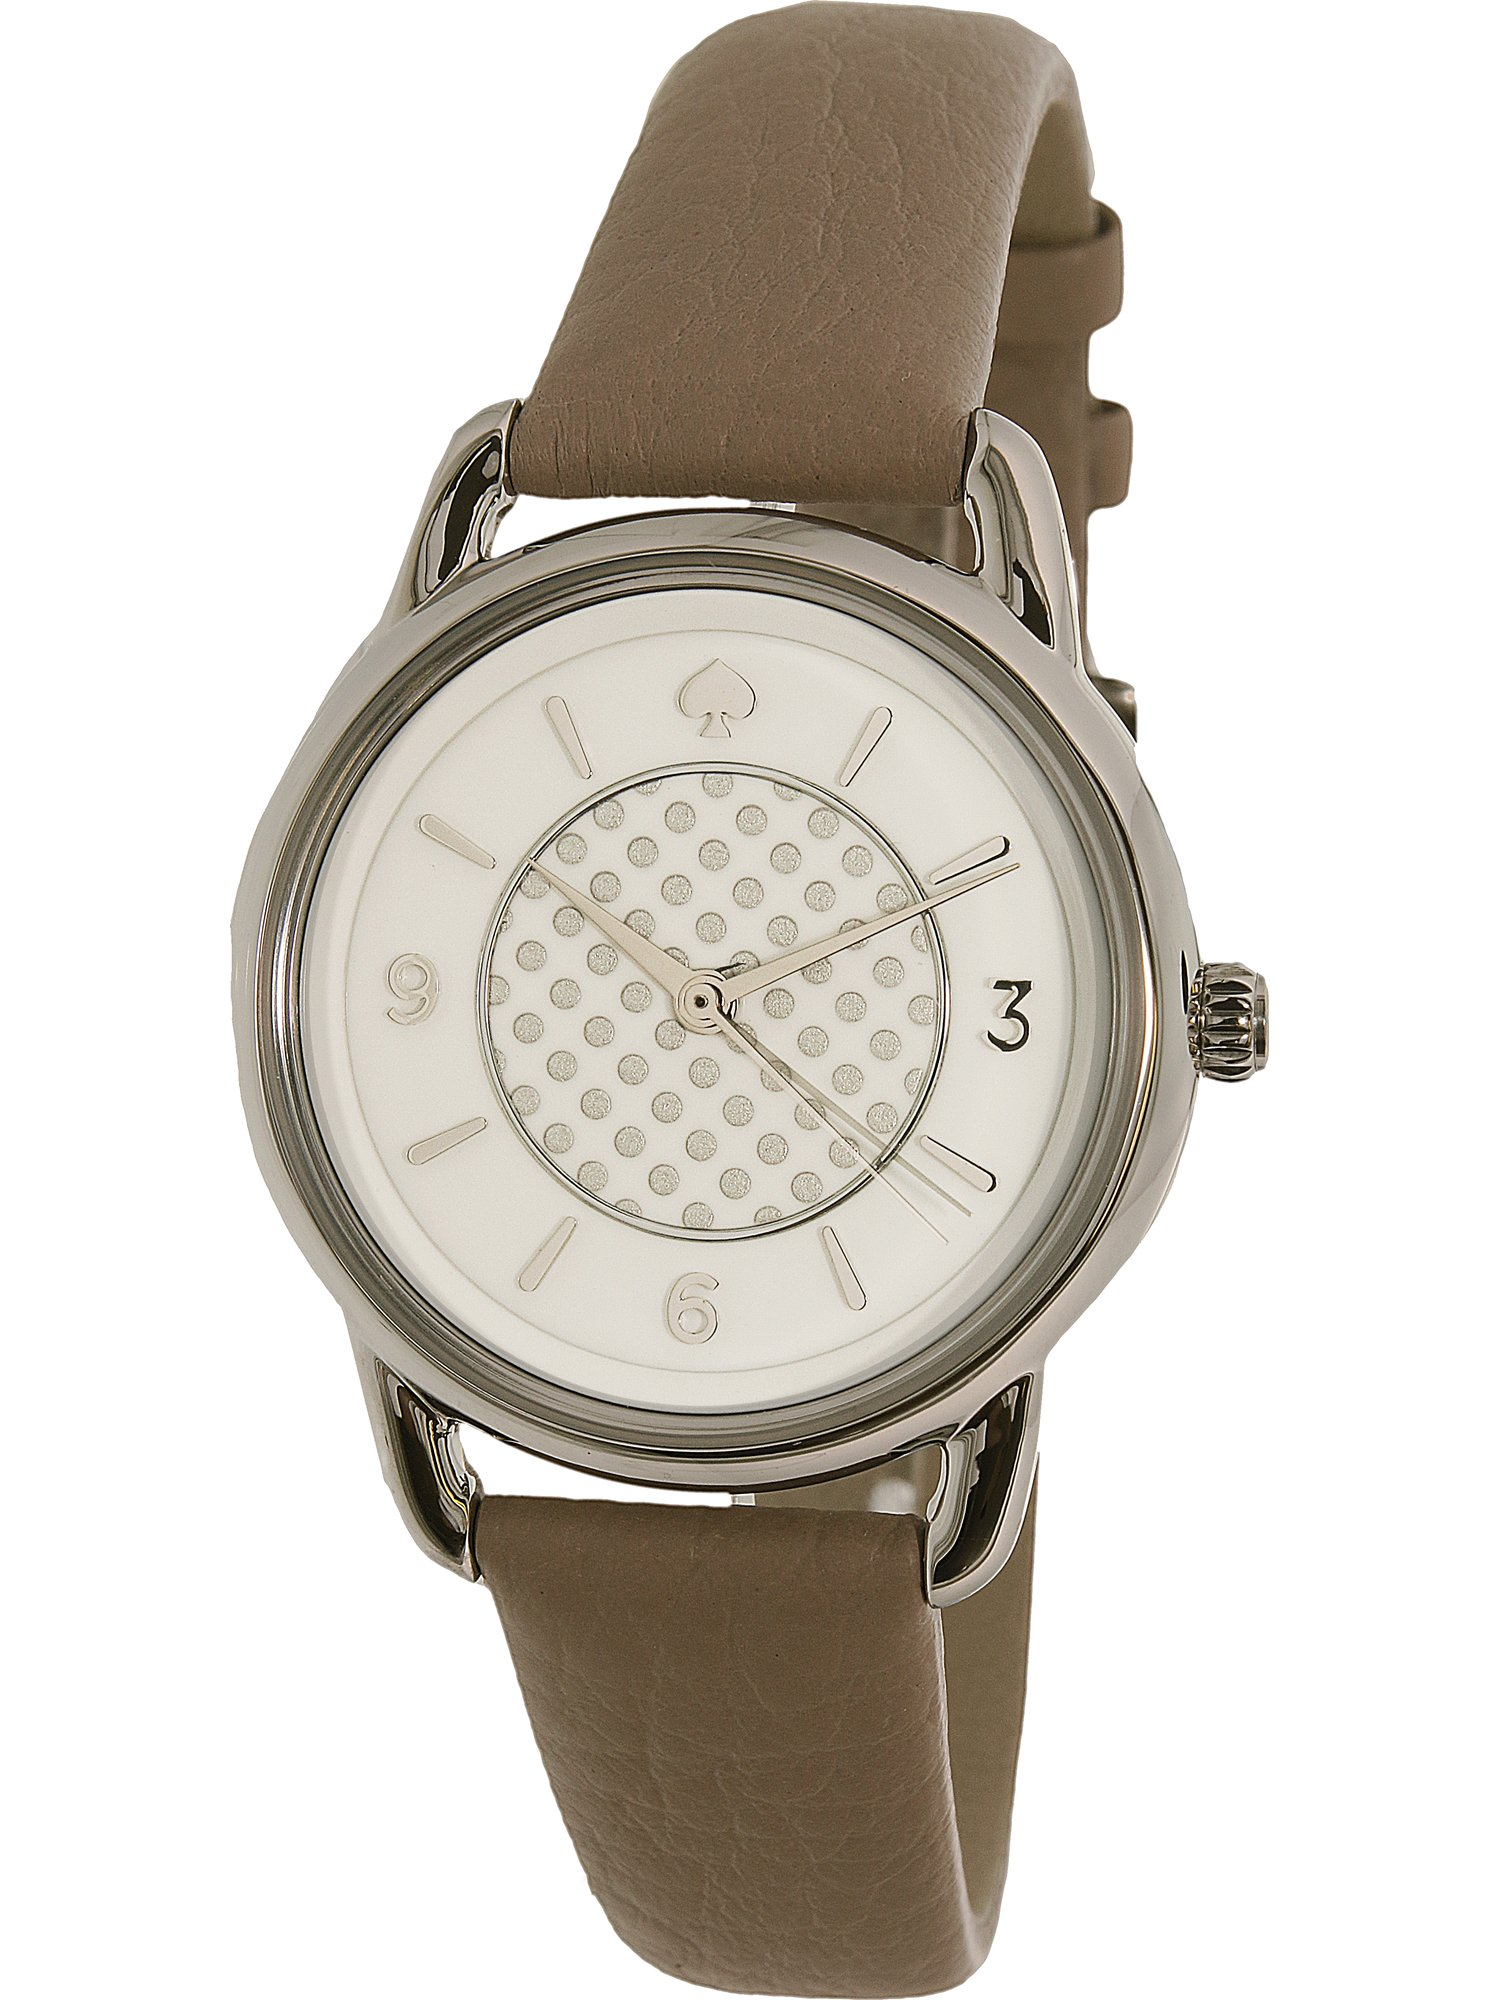 Women's Boathouse KSW1163 Silver Leather Quartz Fashion Watch